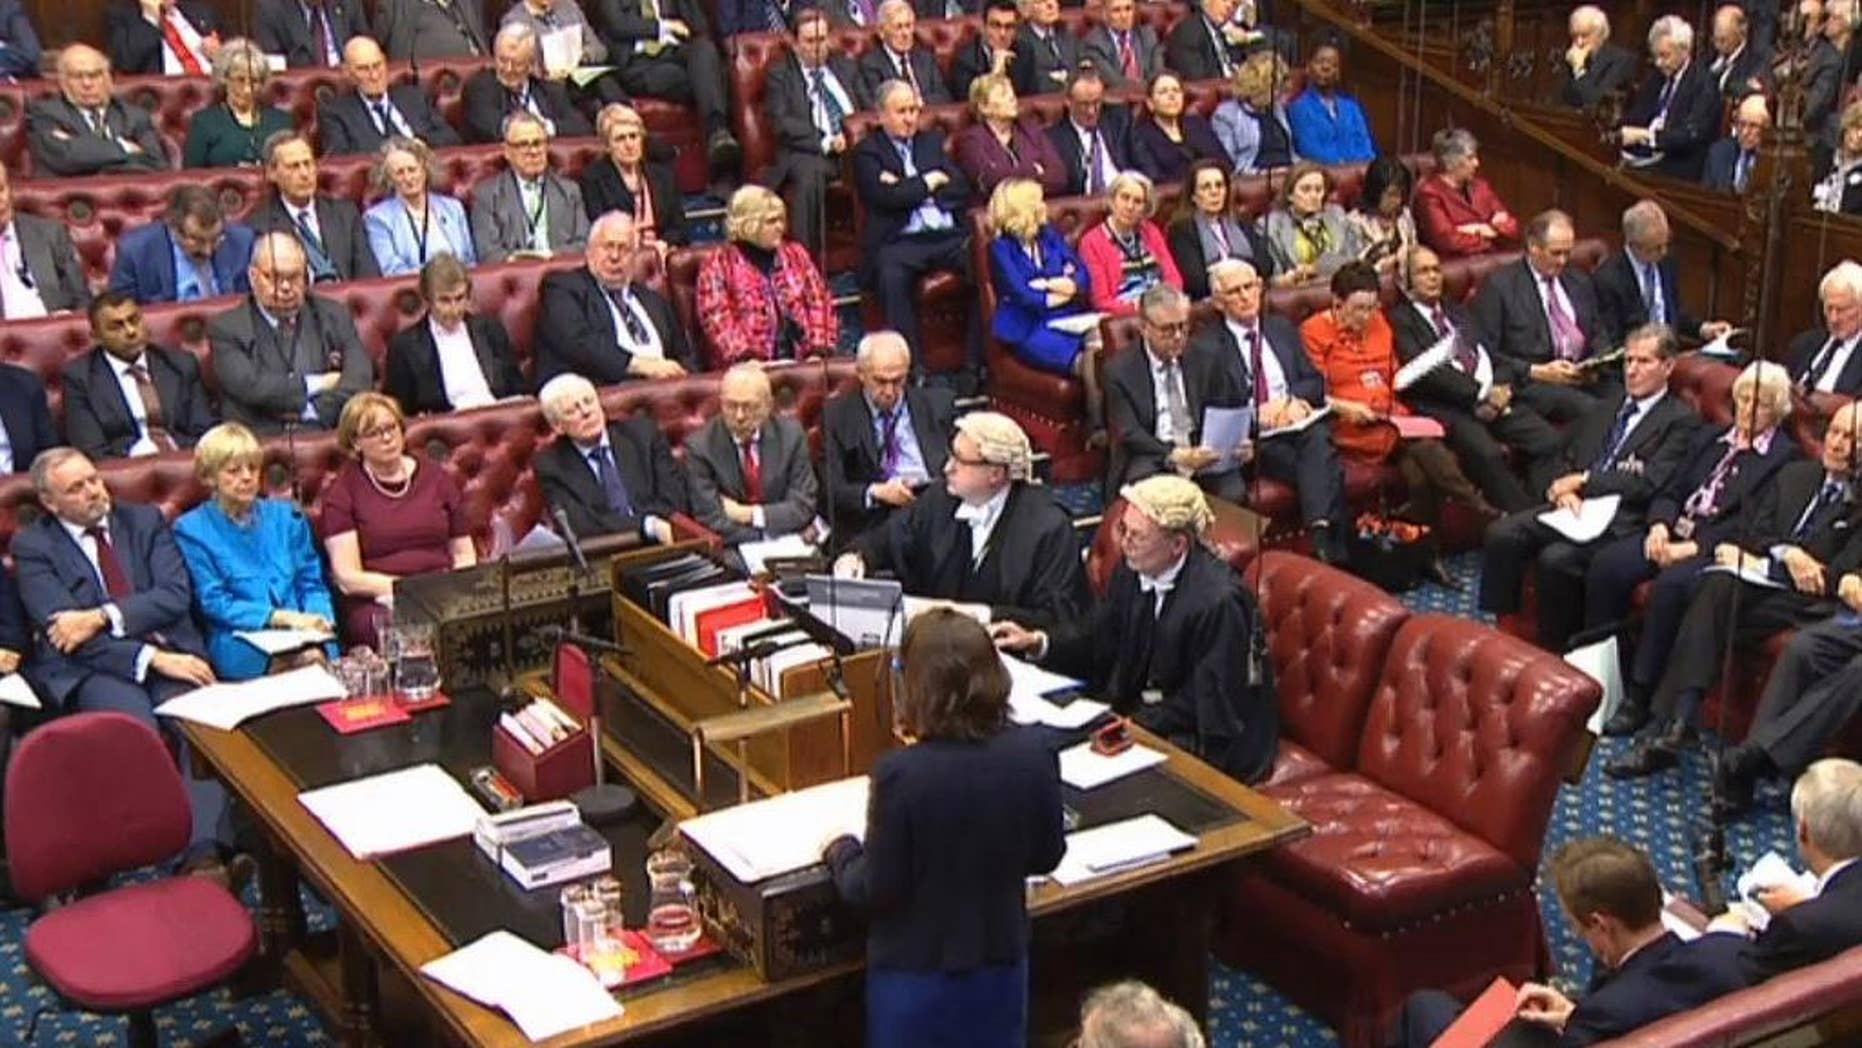 Feb. 20, 2017: Baroness Williams of Trafford speaks in the House of Lords as they debate the Brexit Bill.